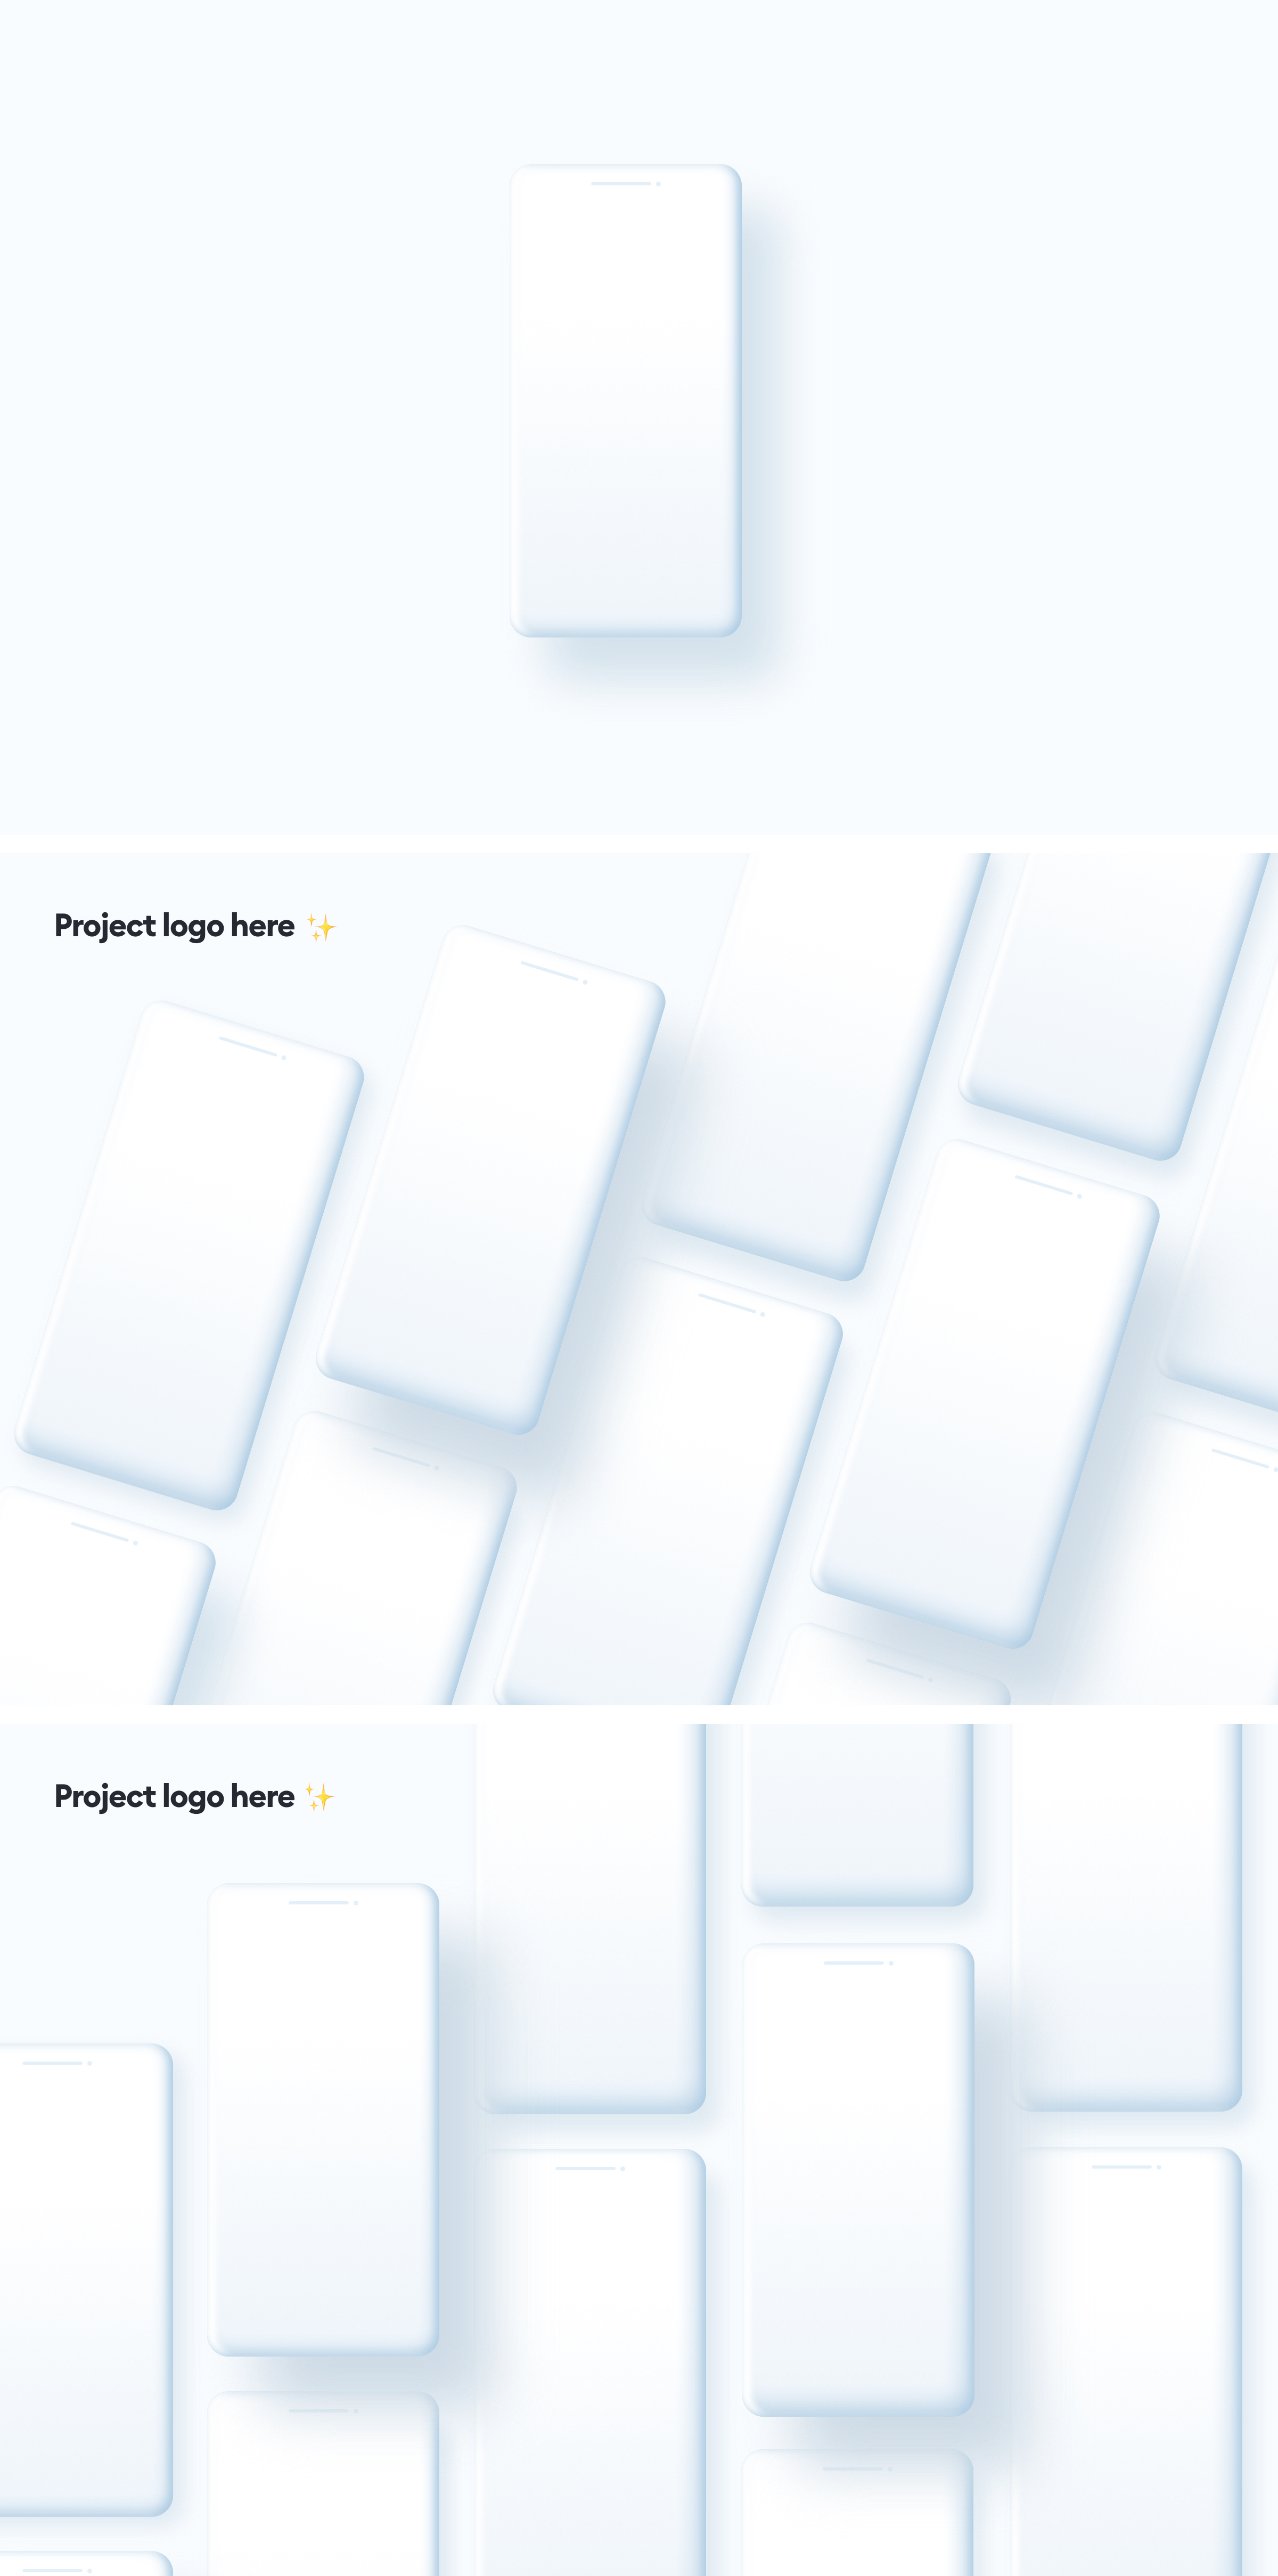 Free iPhone 12 Clay Mockups for Sketch and Figma - Simple, minimal, super-clean set of iPhone 12 clay mockups from Hype4Academy. We've been asked a lot about our custom, clay mockups, so here they are so you can use them as well in your project presentations